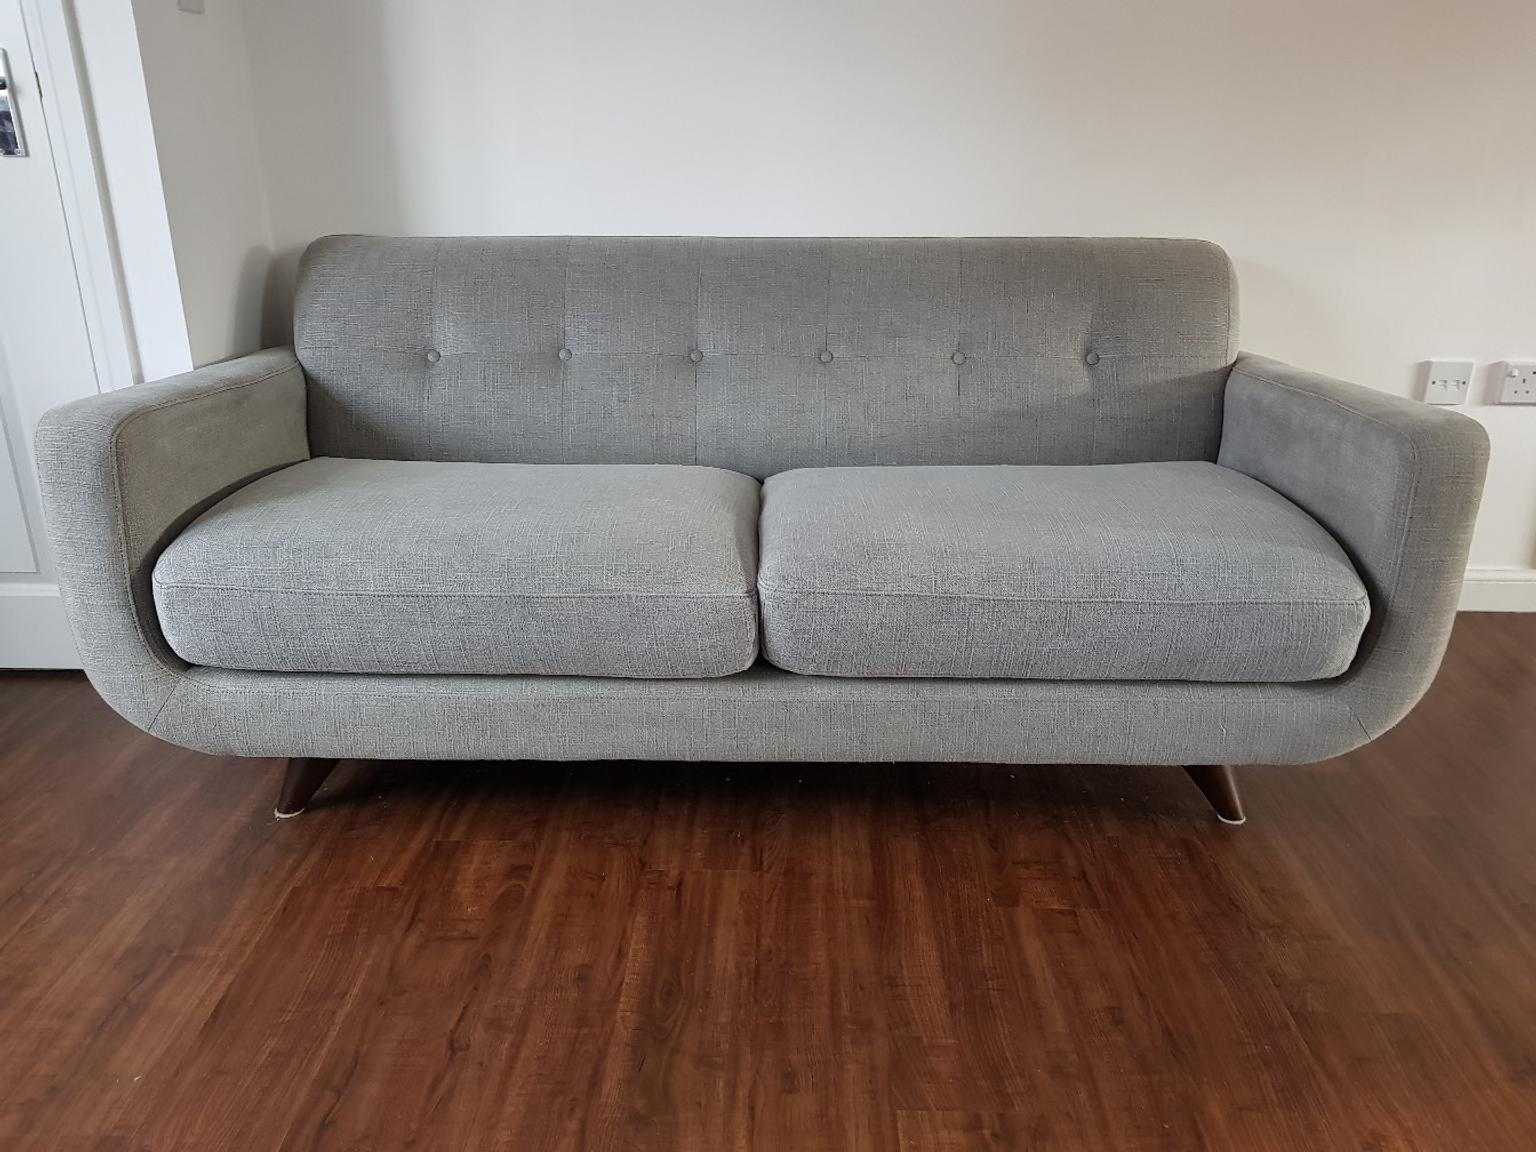 Homesense 3 Seater Sofa In WR5 Worcester For £160.00 For Sale | Shpock